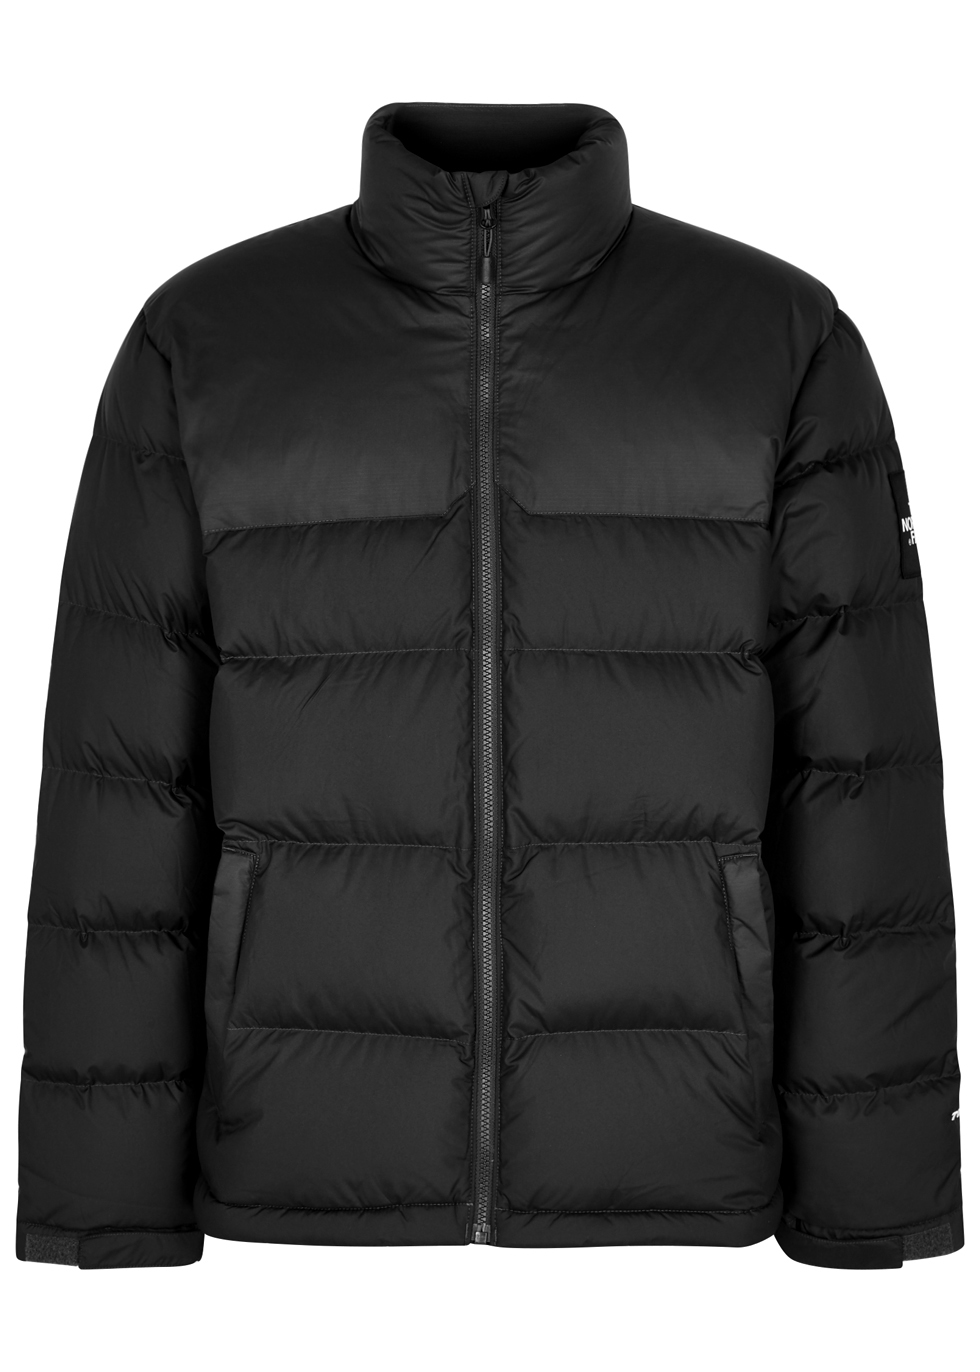 THE NORTH FACE NUPTSE 1992 QUILTED SHELL JACKET